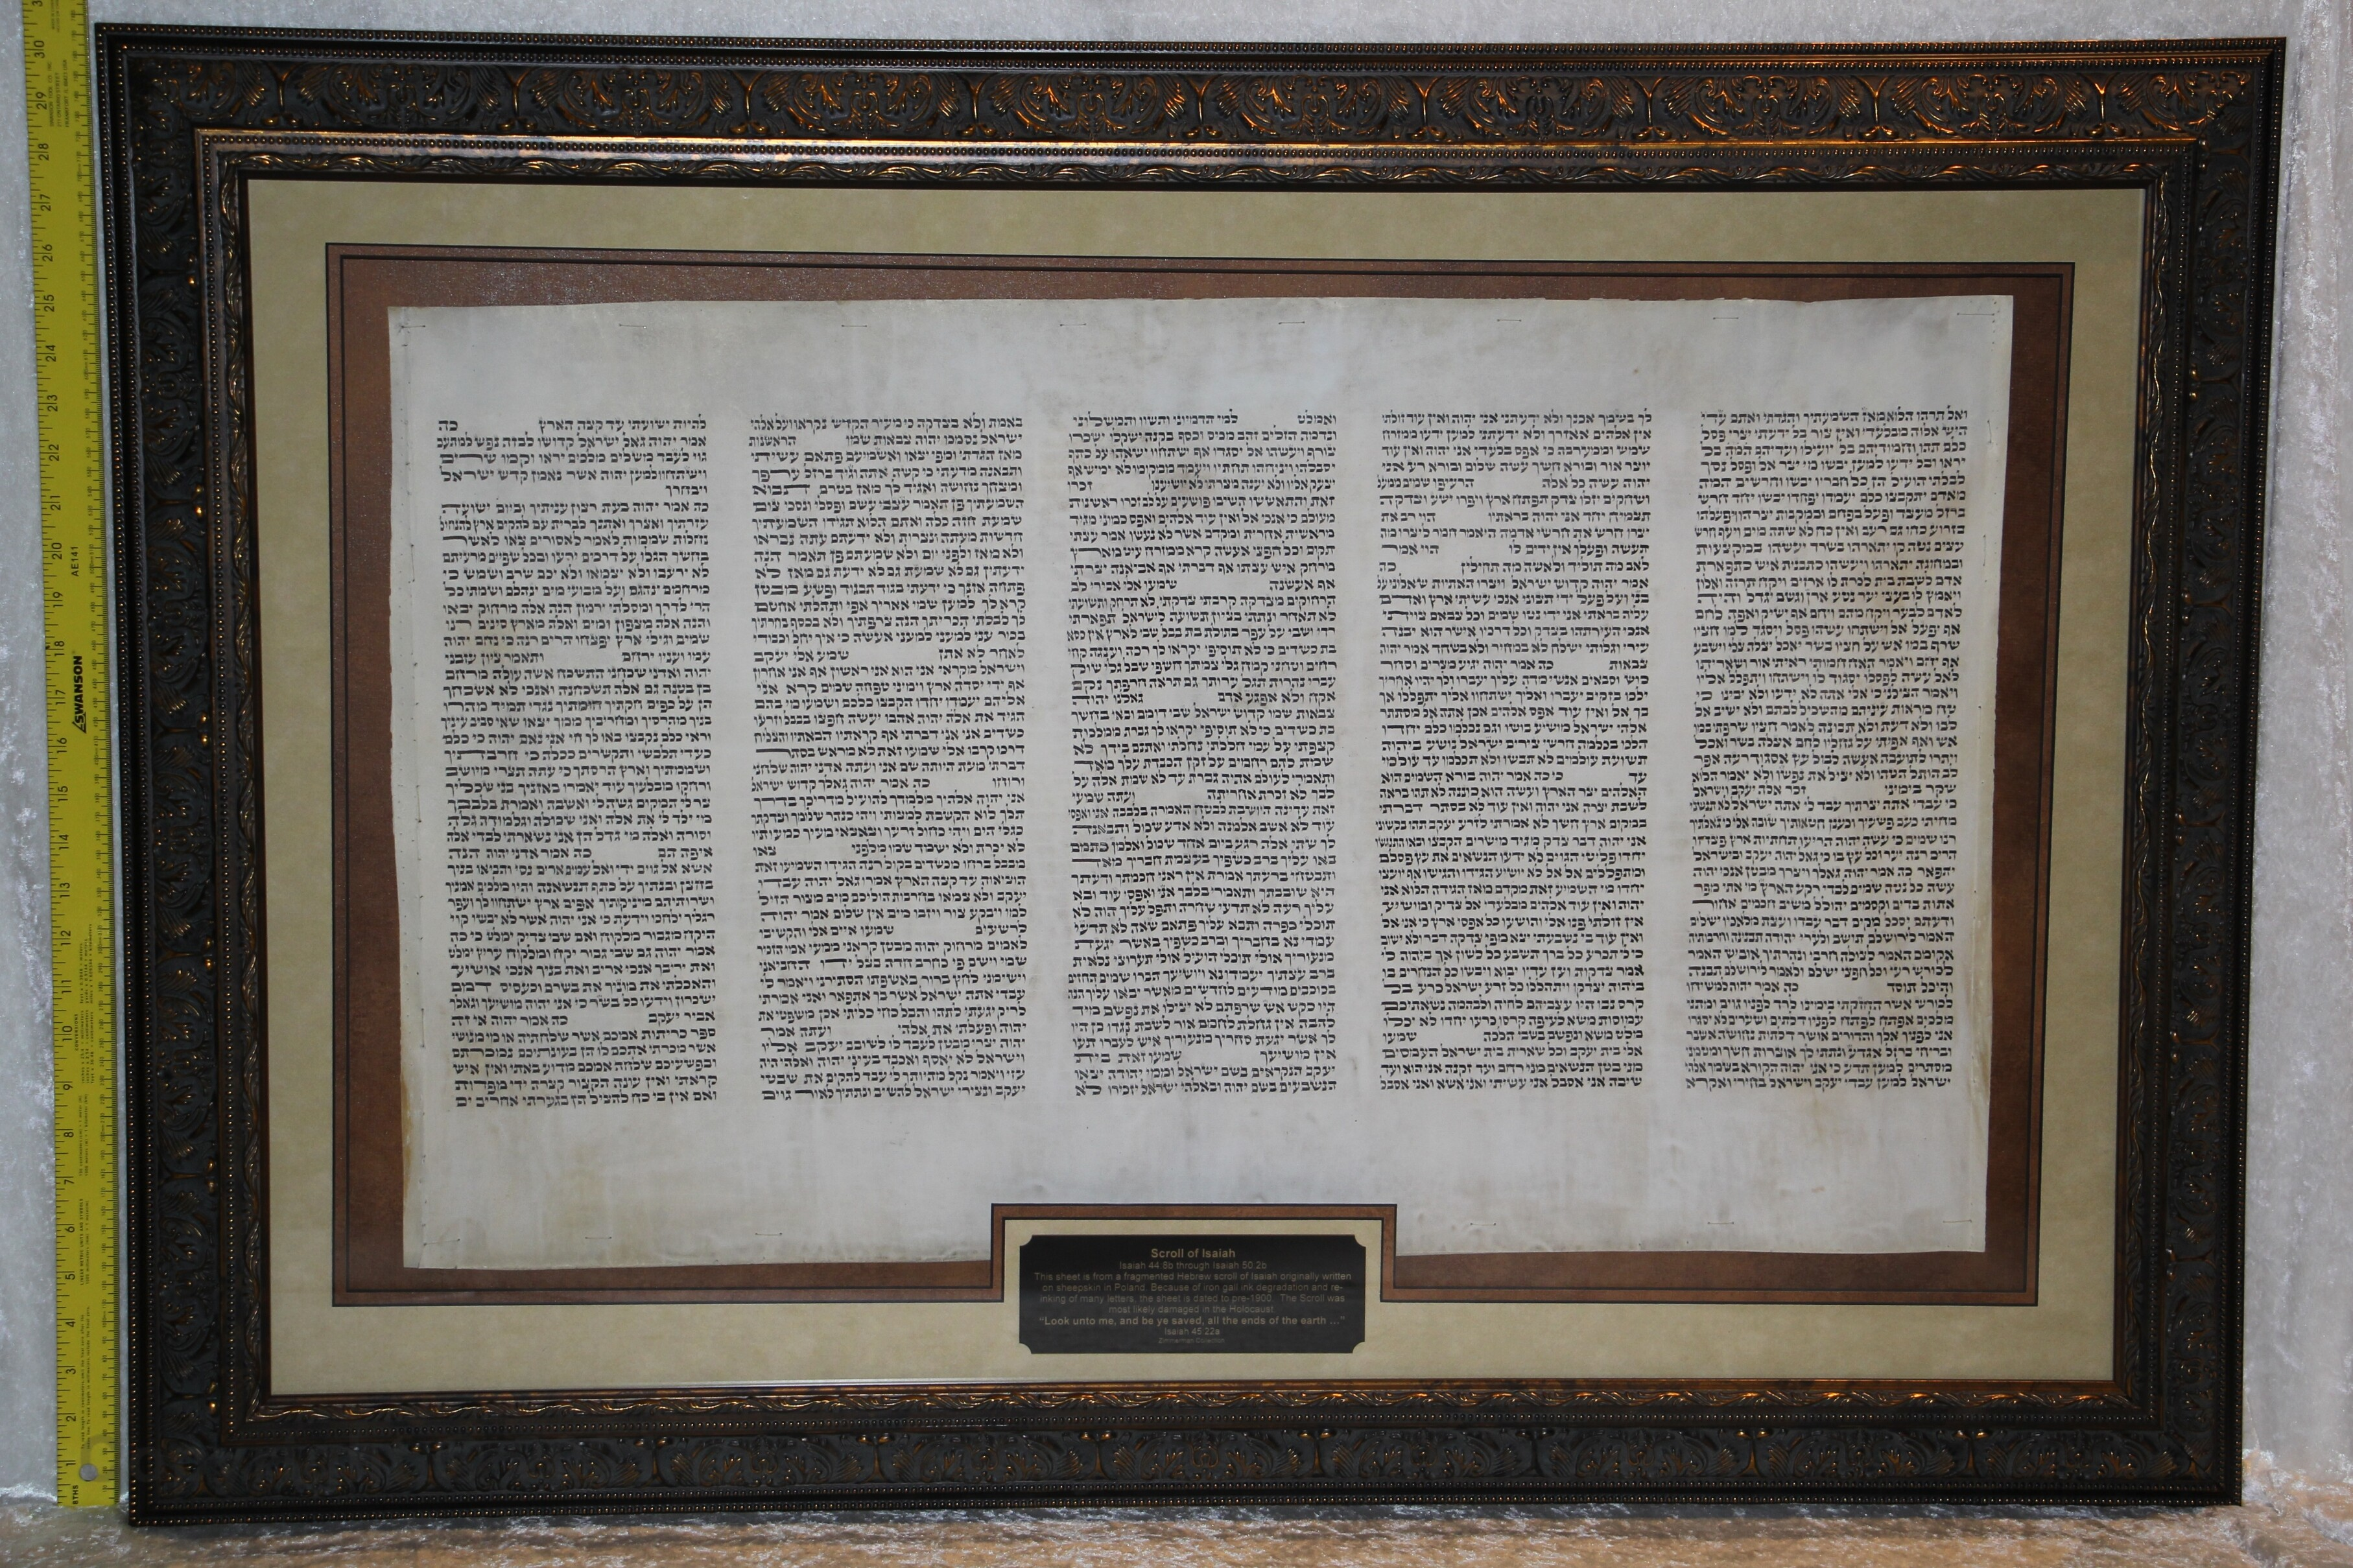 """Framed sheet from a Scroll of Isaiah """"Look unto me, and be ye saved, all the ends of the earth"""" Written in Poland in the 1800s Isaiah 44:8b through Isaiah 50:2b"""